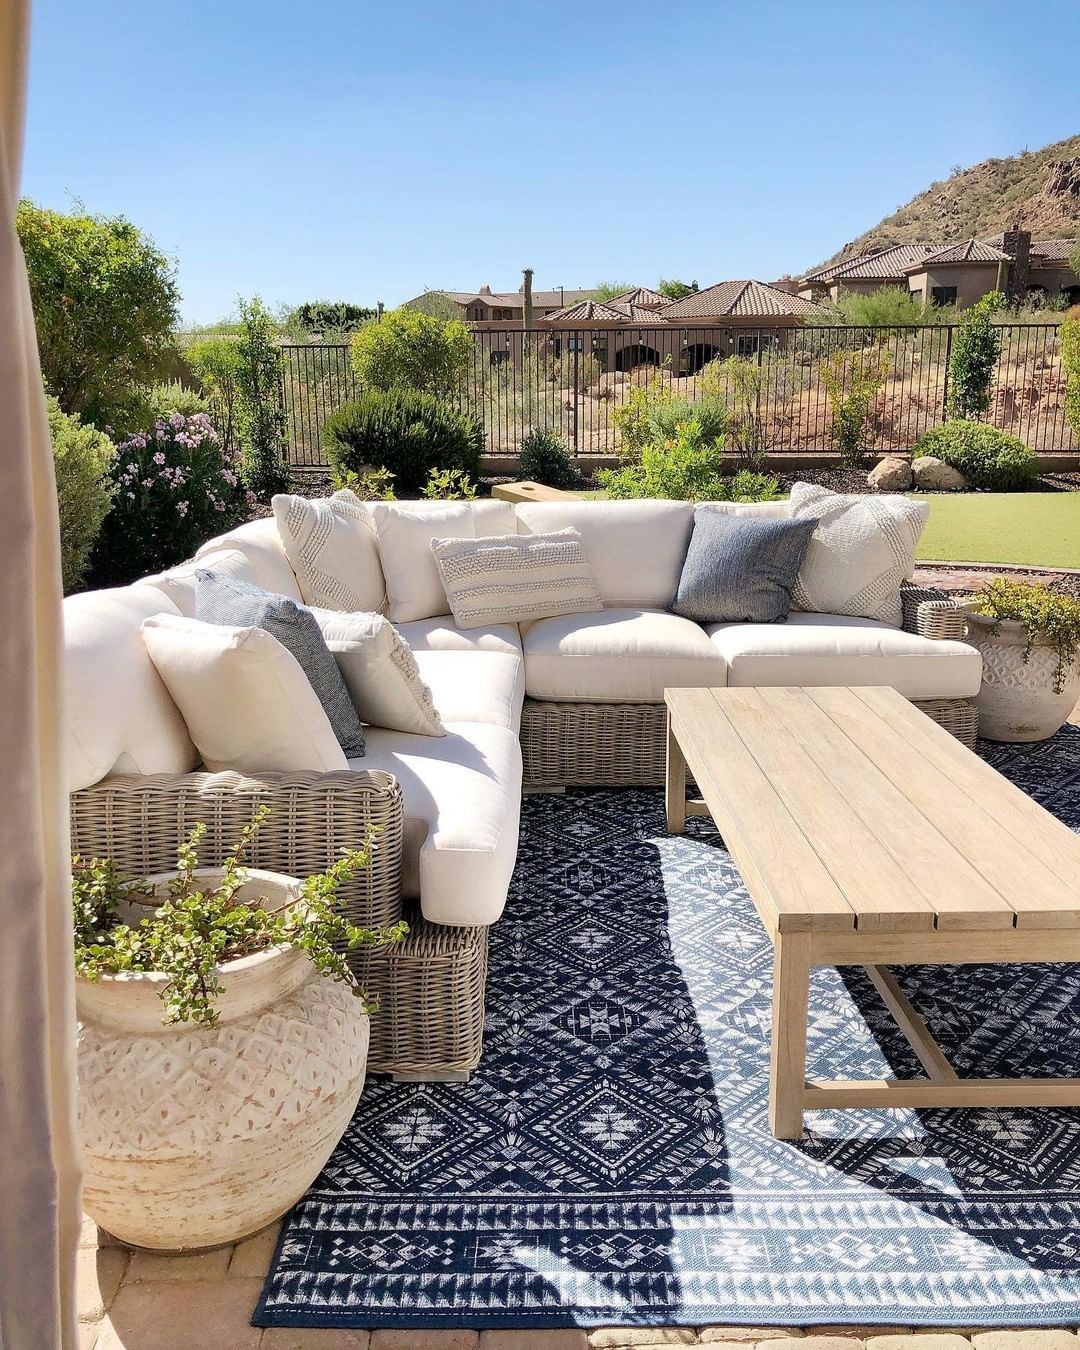 Summer ready ☀️@desertdecor's balcony is absolute goals! Click the image to try our free home design app.  (Keywords: patio decor, patio ideas, backyard patio, dream home, home decor ideas, outdoor fireplace, outdoor patio ideas, DIY home decor, backyard patio decor, backyard garden, patio decorating ideas)